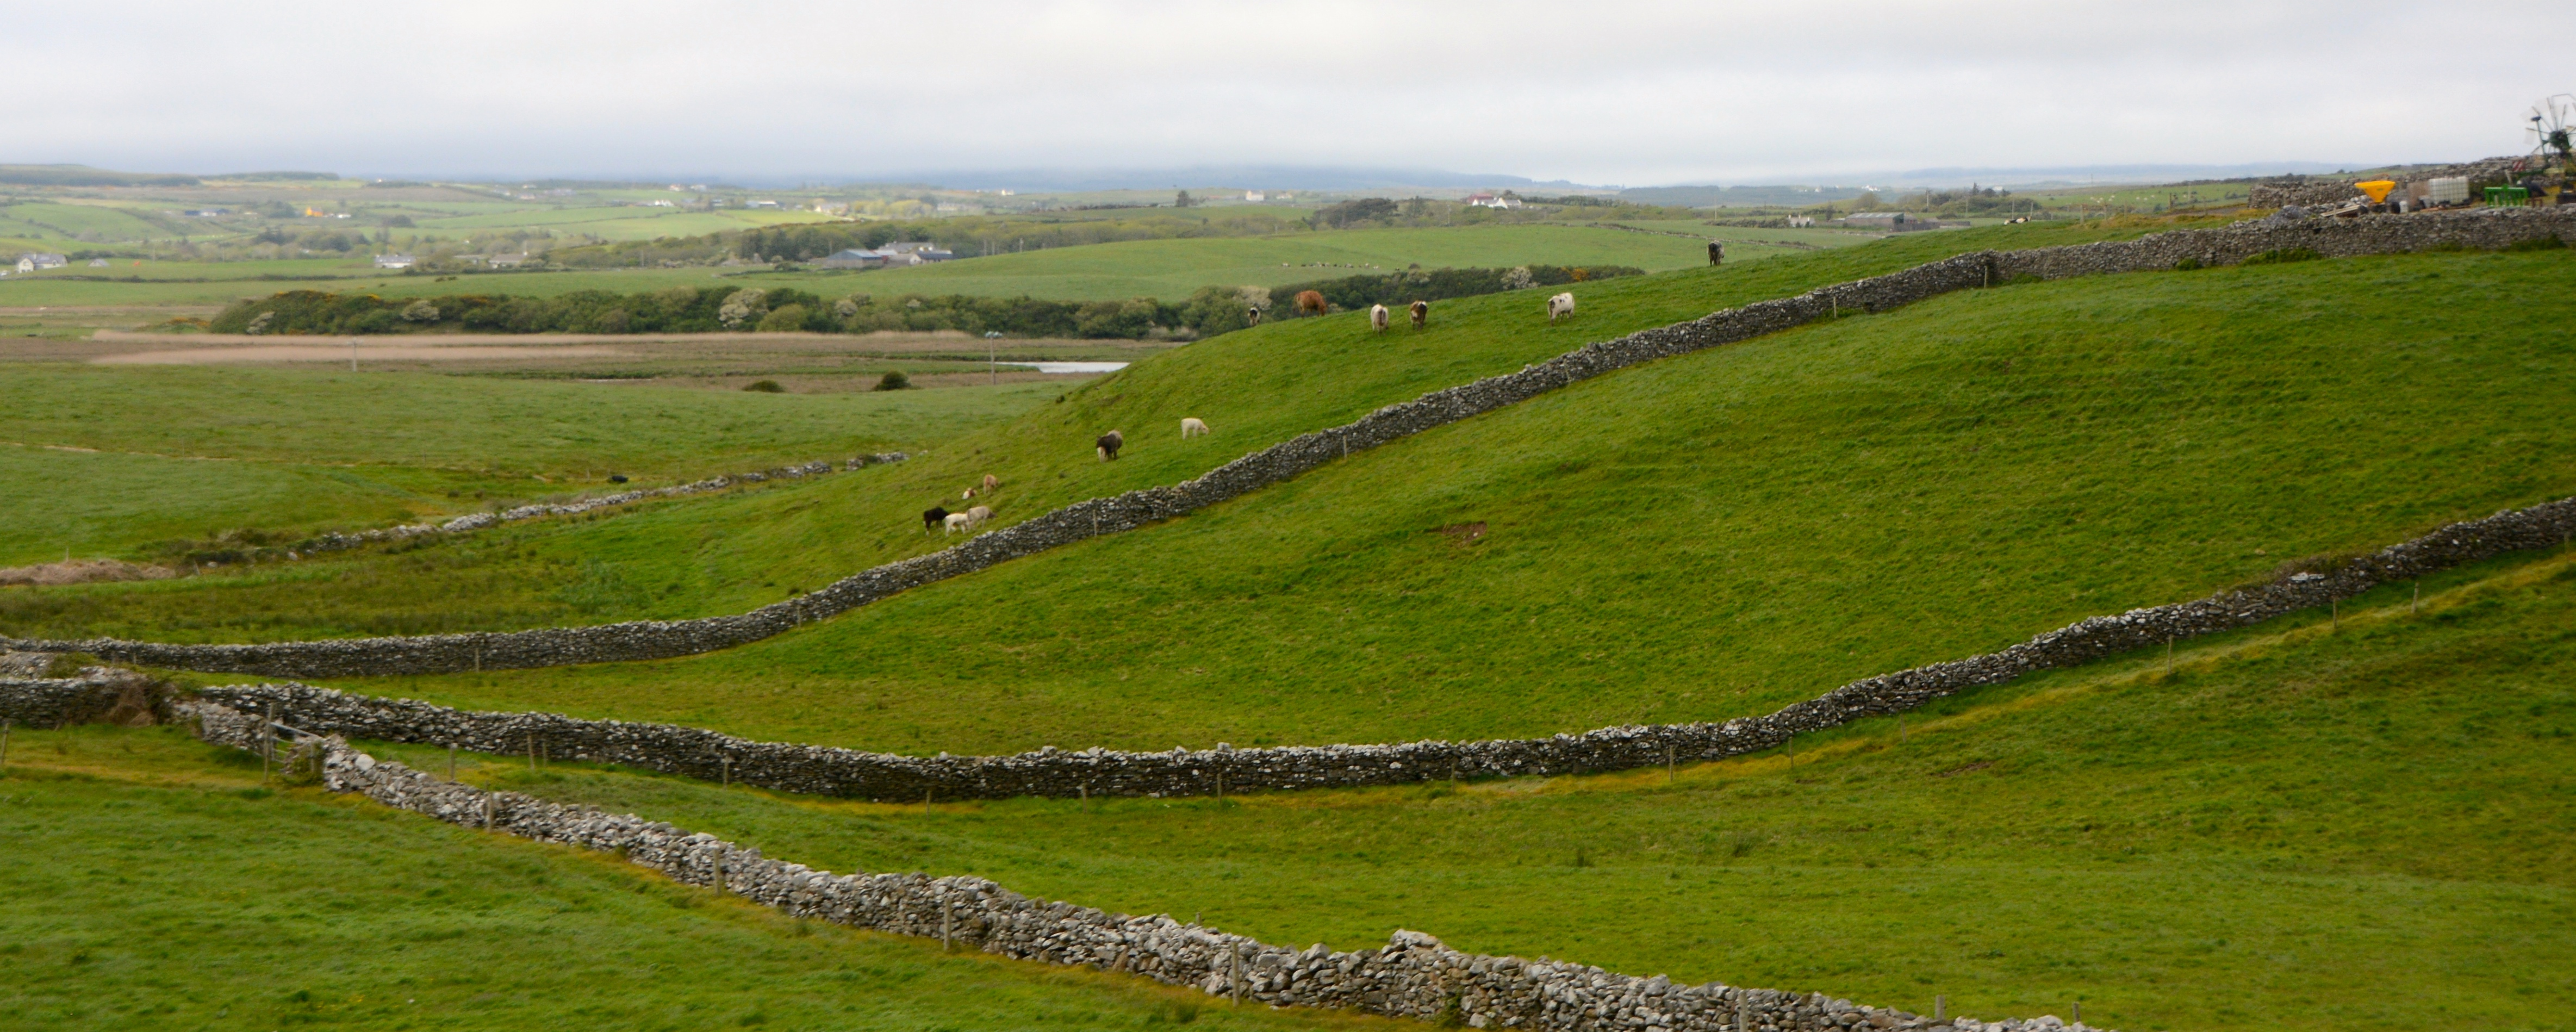 The stone walls of the Irish countryside. www.gypsyat60.com